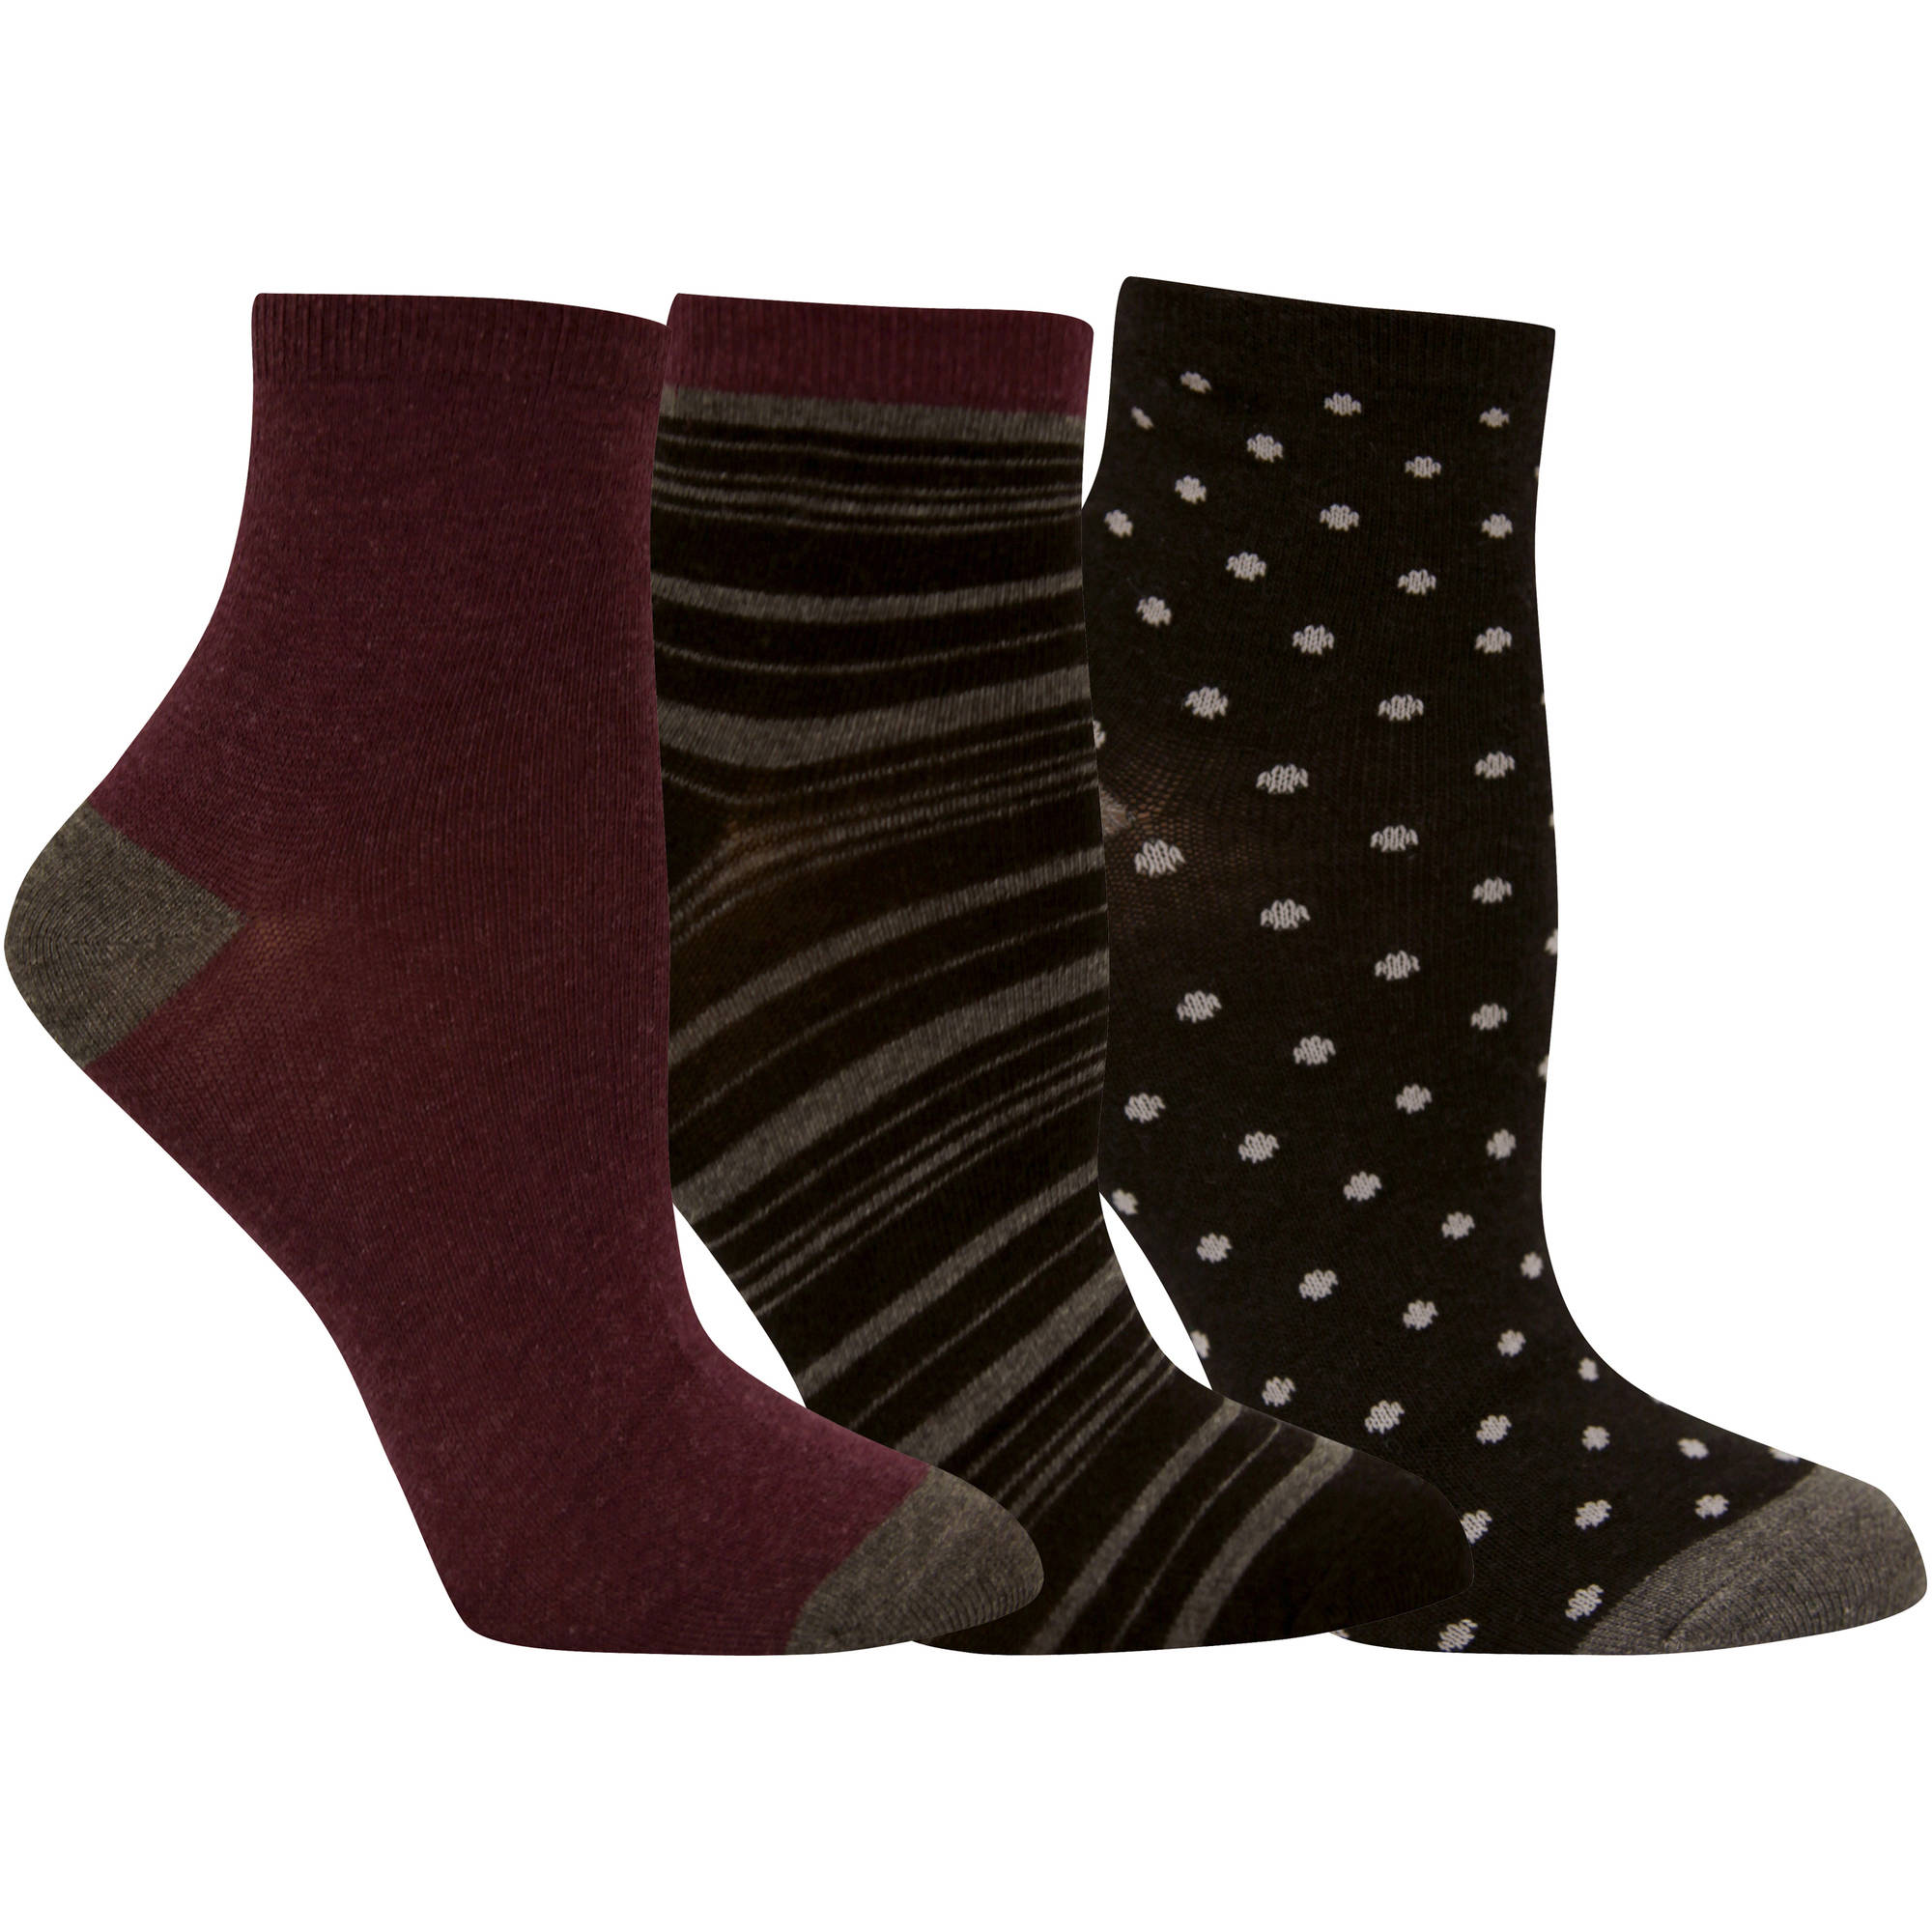 Faded Glory Womens Assorted Stripe Ankle Socks - 3 Pack